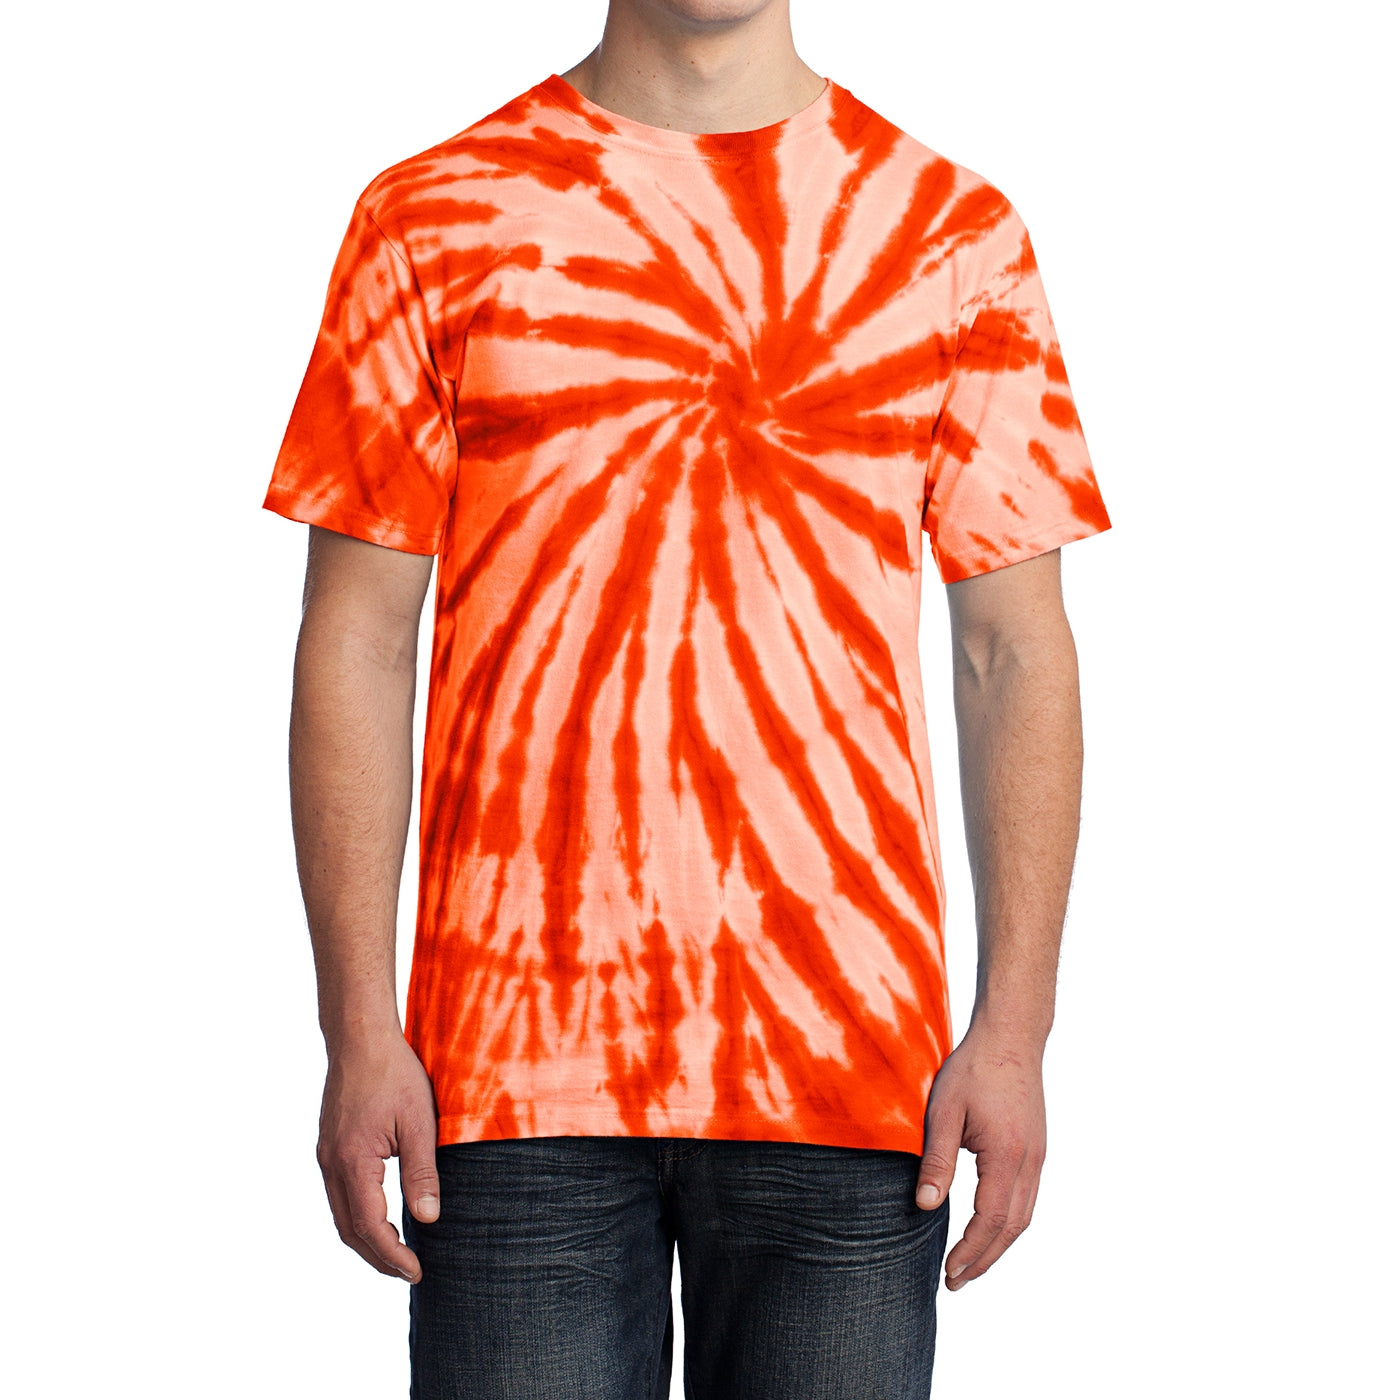 Men's Tie-Dye Tee - Orange - Front